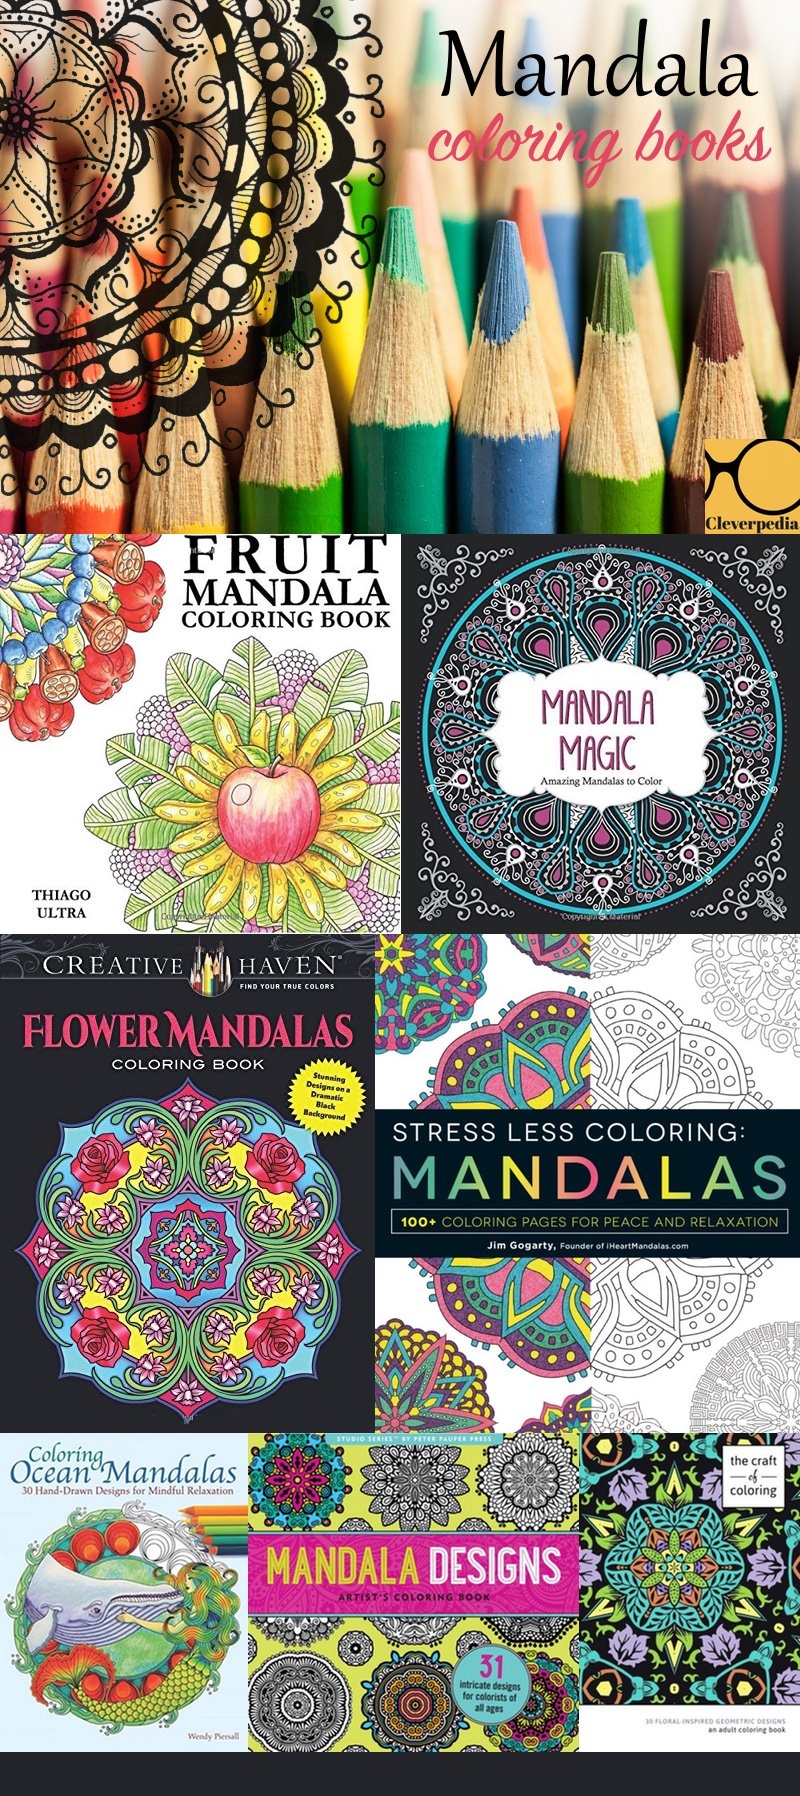 Mandalas Are Probably The Most Stress Relieving Types Of Coloring Books Out There They